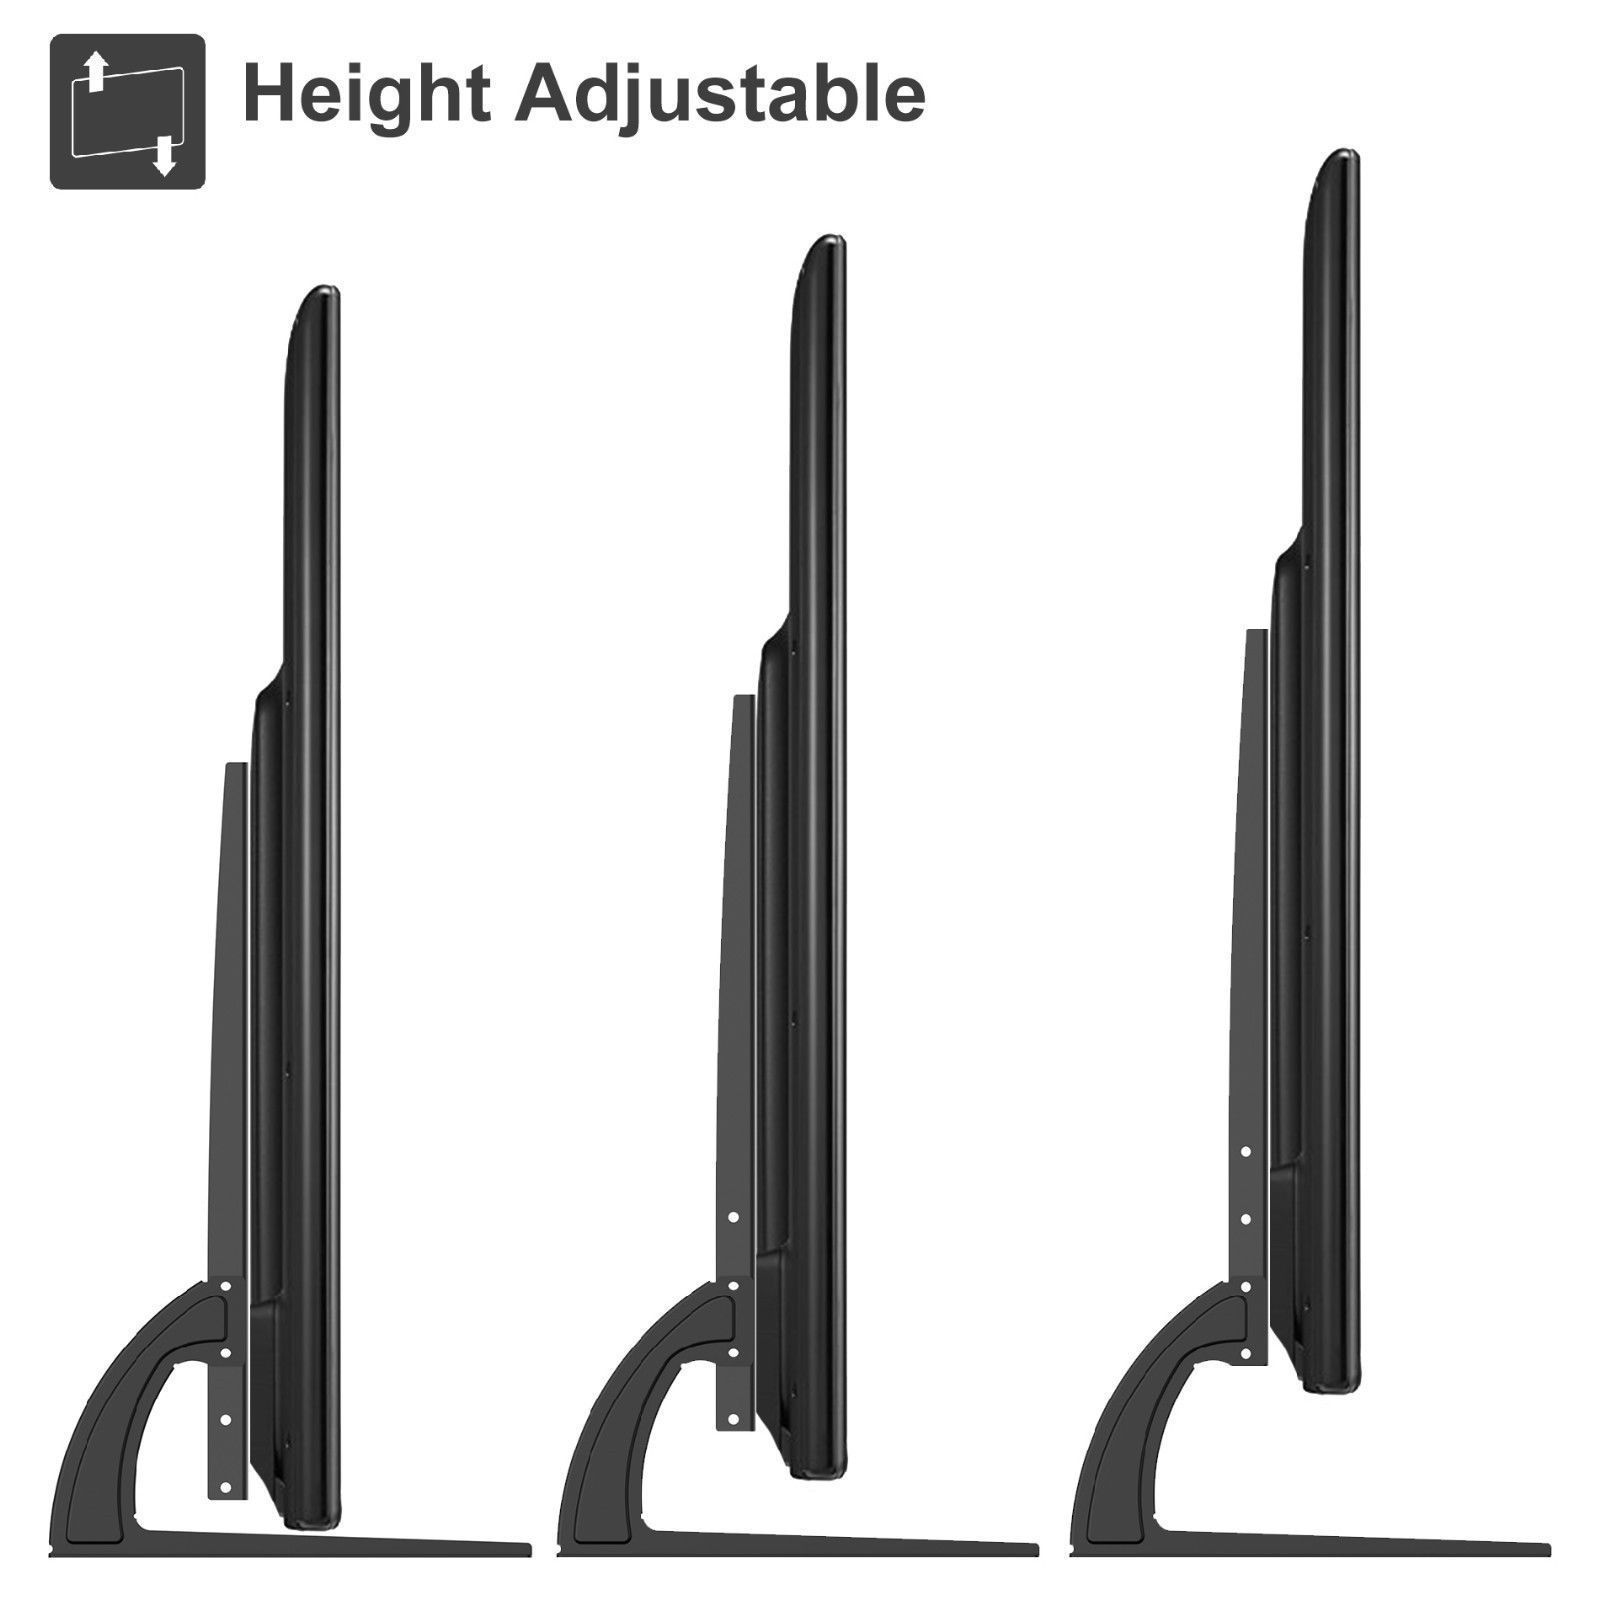 Universal Table Top TV Stand Legs for LG 47LM6700 Height Adjustable